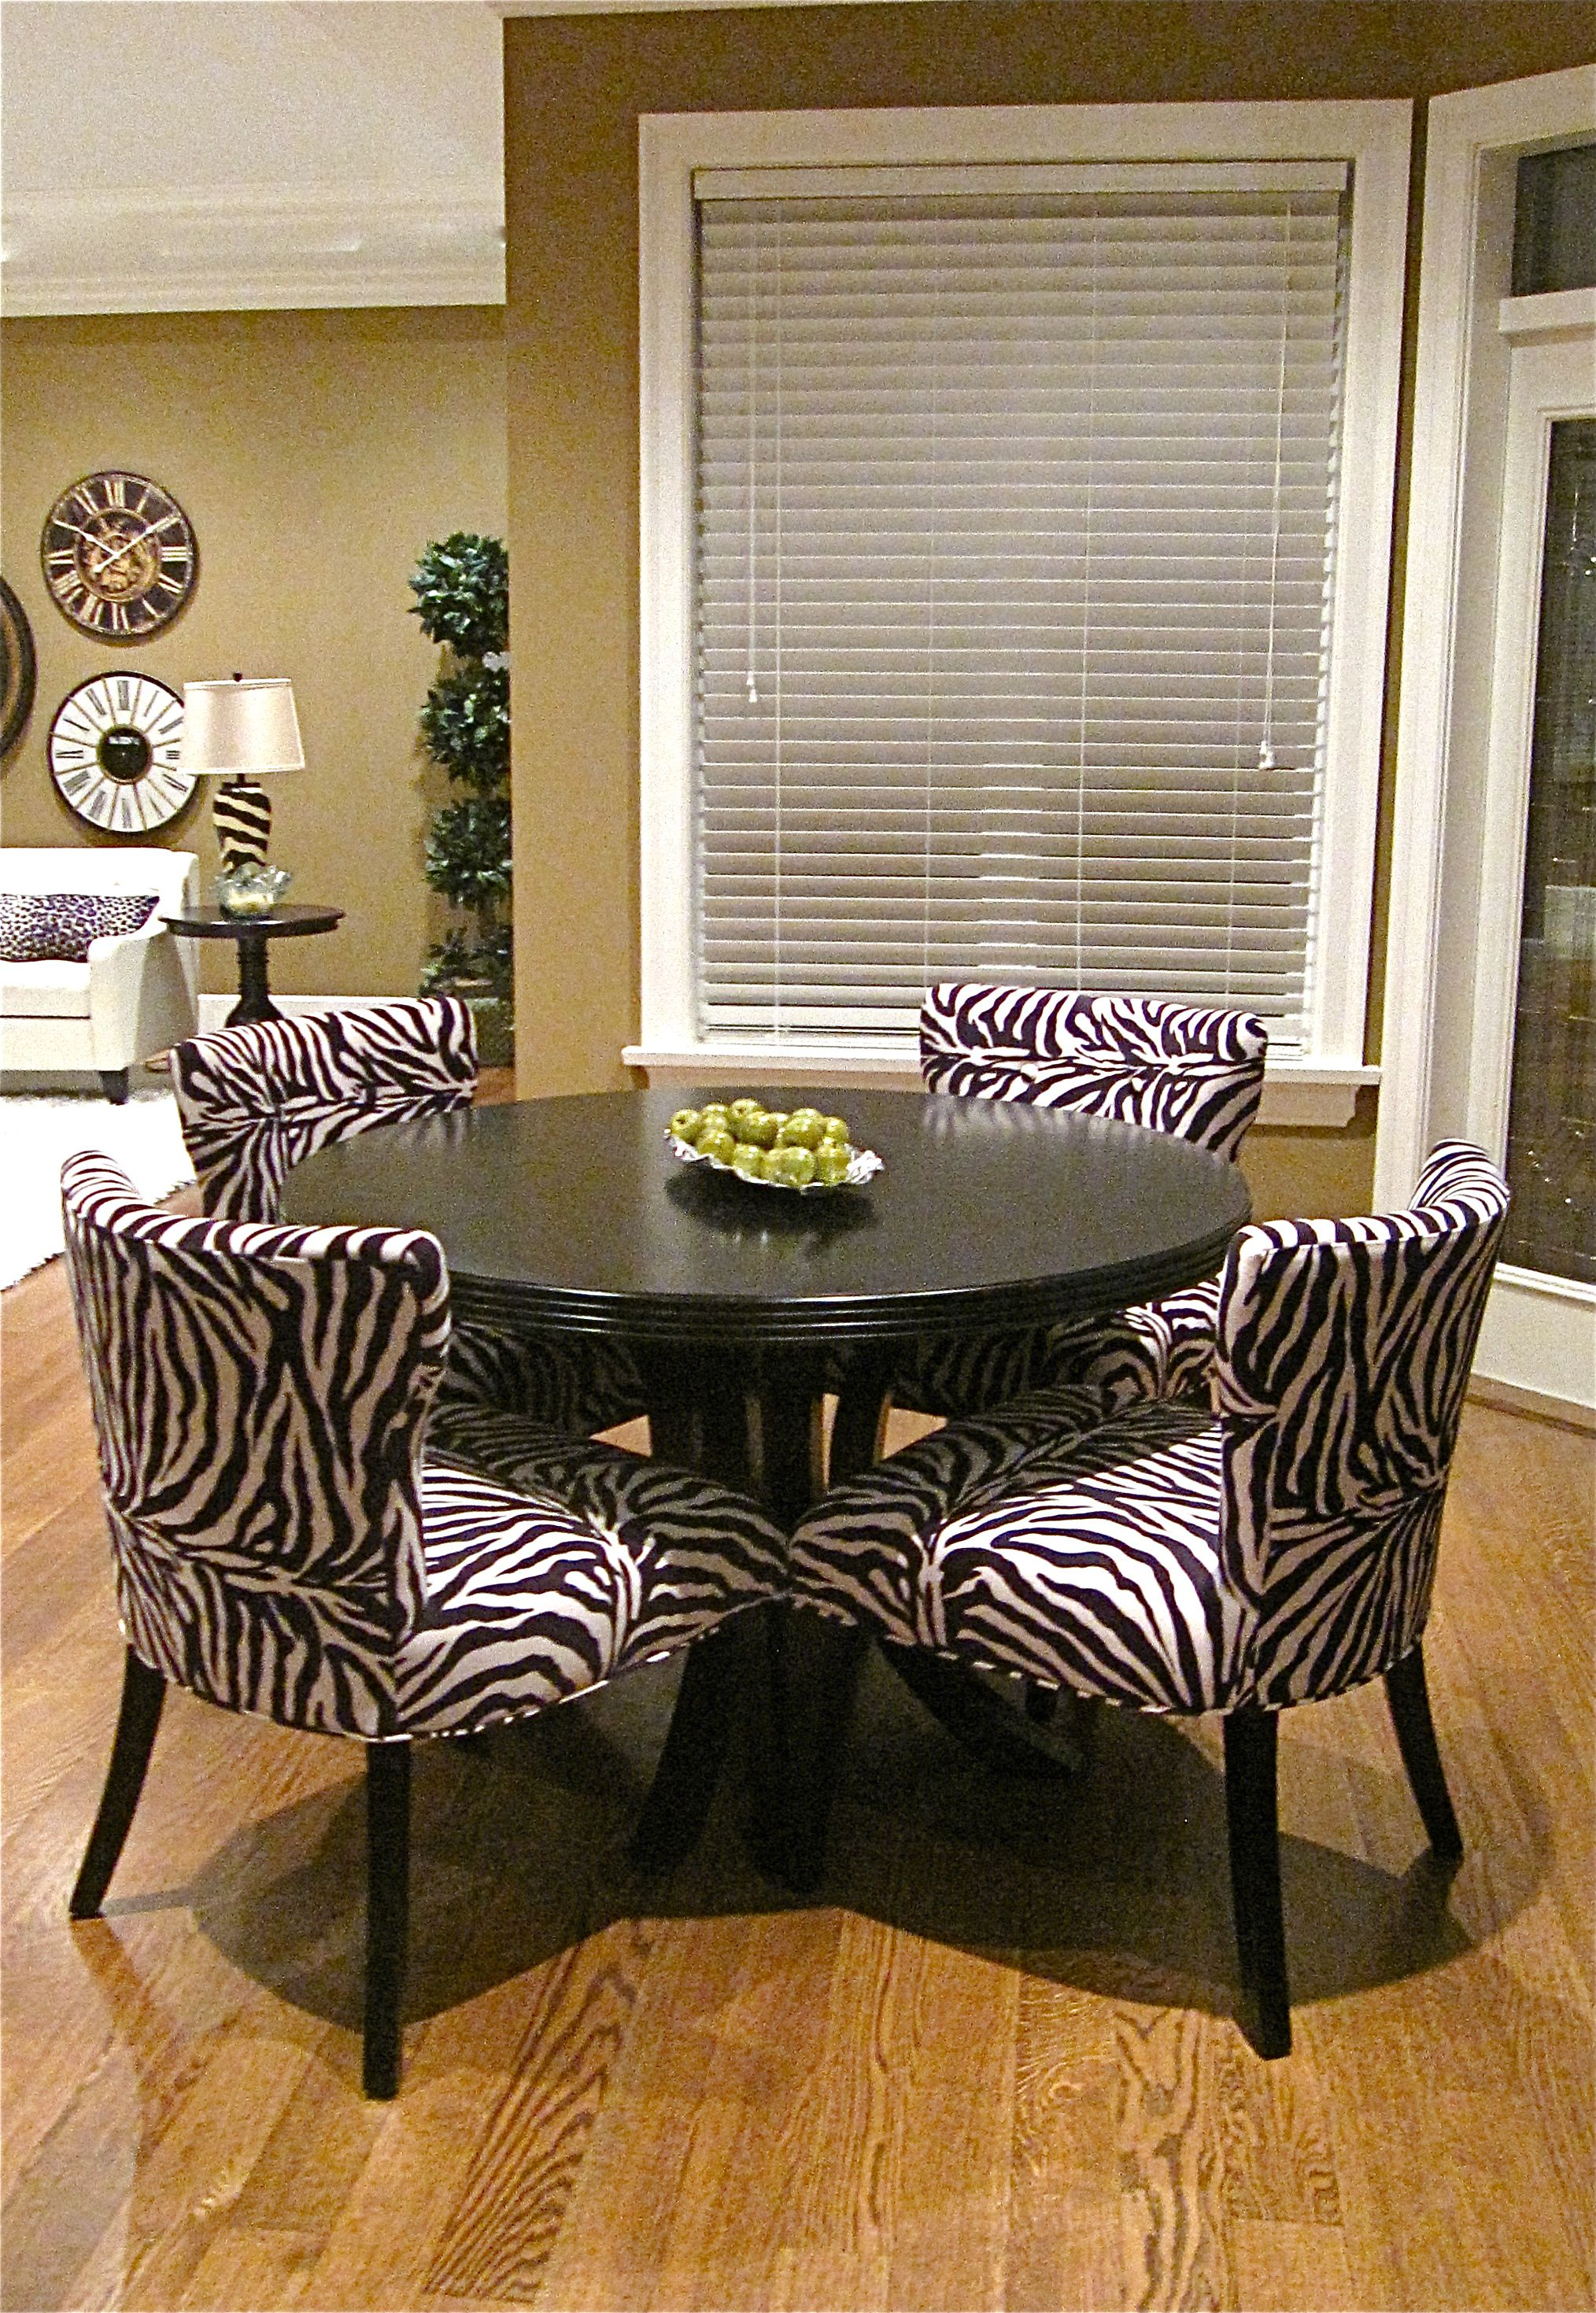 Breakfast Nook features round table & zebra chairs coordinated